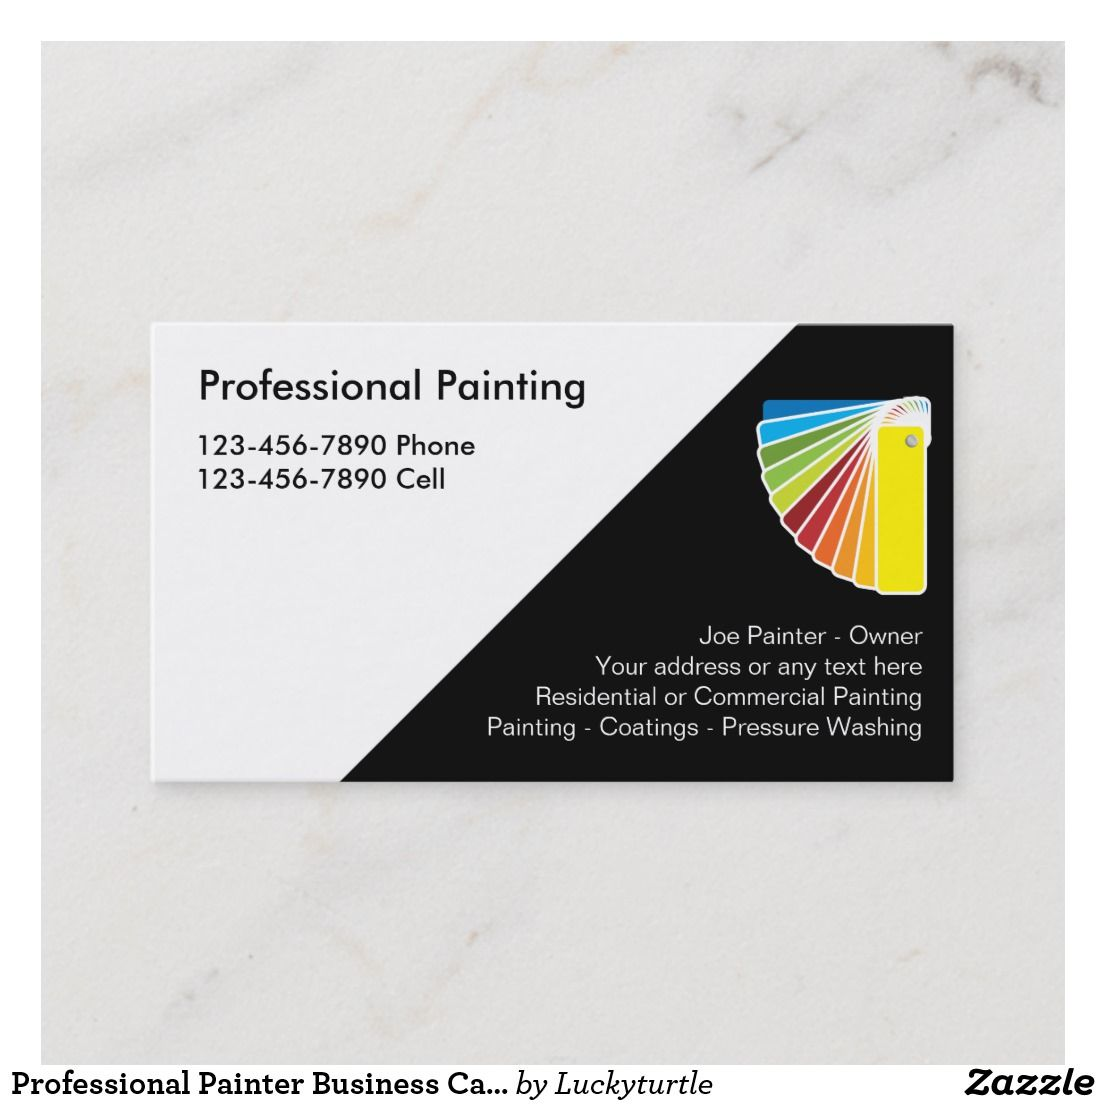 Professional Painter Business Cards Zazzle Com Painter Business Card Printing Business Cards Company Business Cards